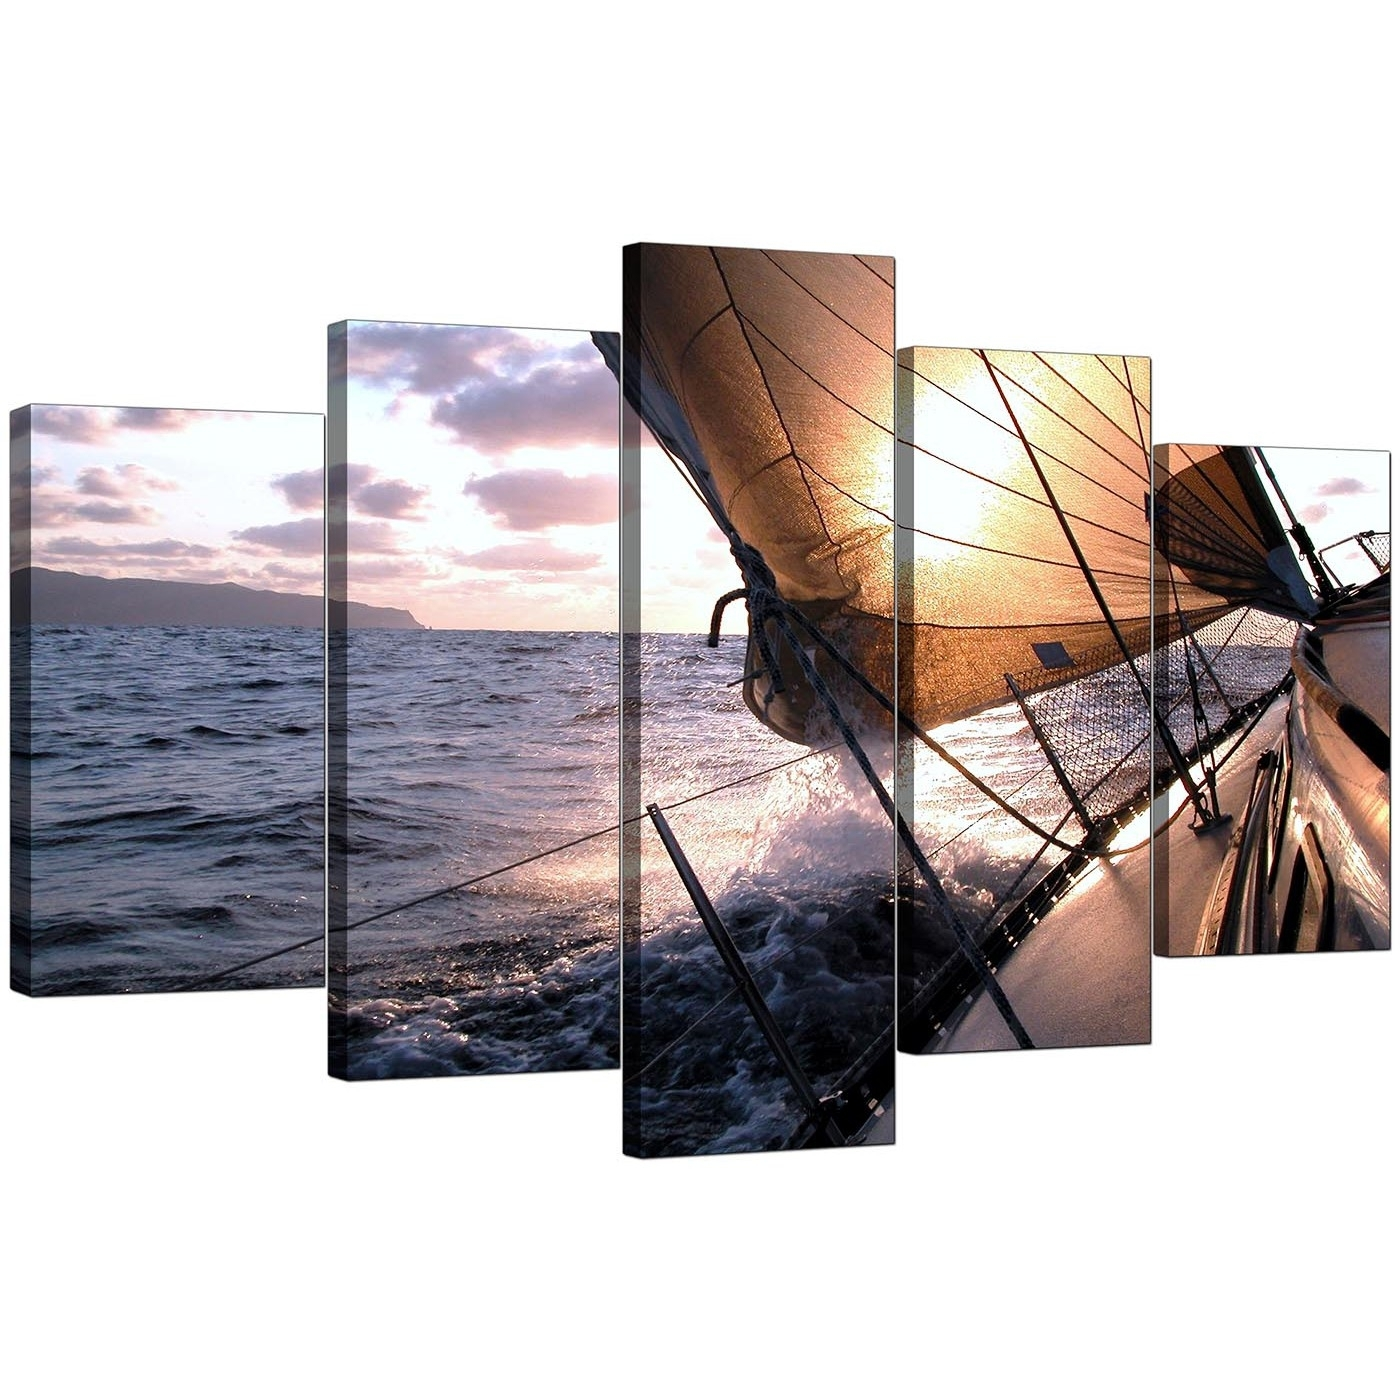 Boat Canvas Prints Uk For Your Living Room – 5 Piece Regarding Most Recent Five Piece Canvas Wall Art (View 4 of 20)